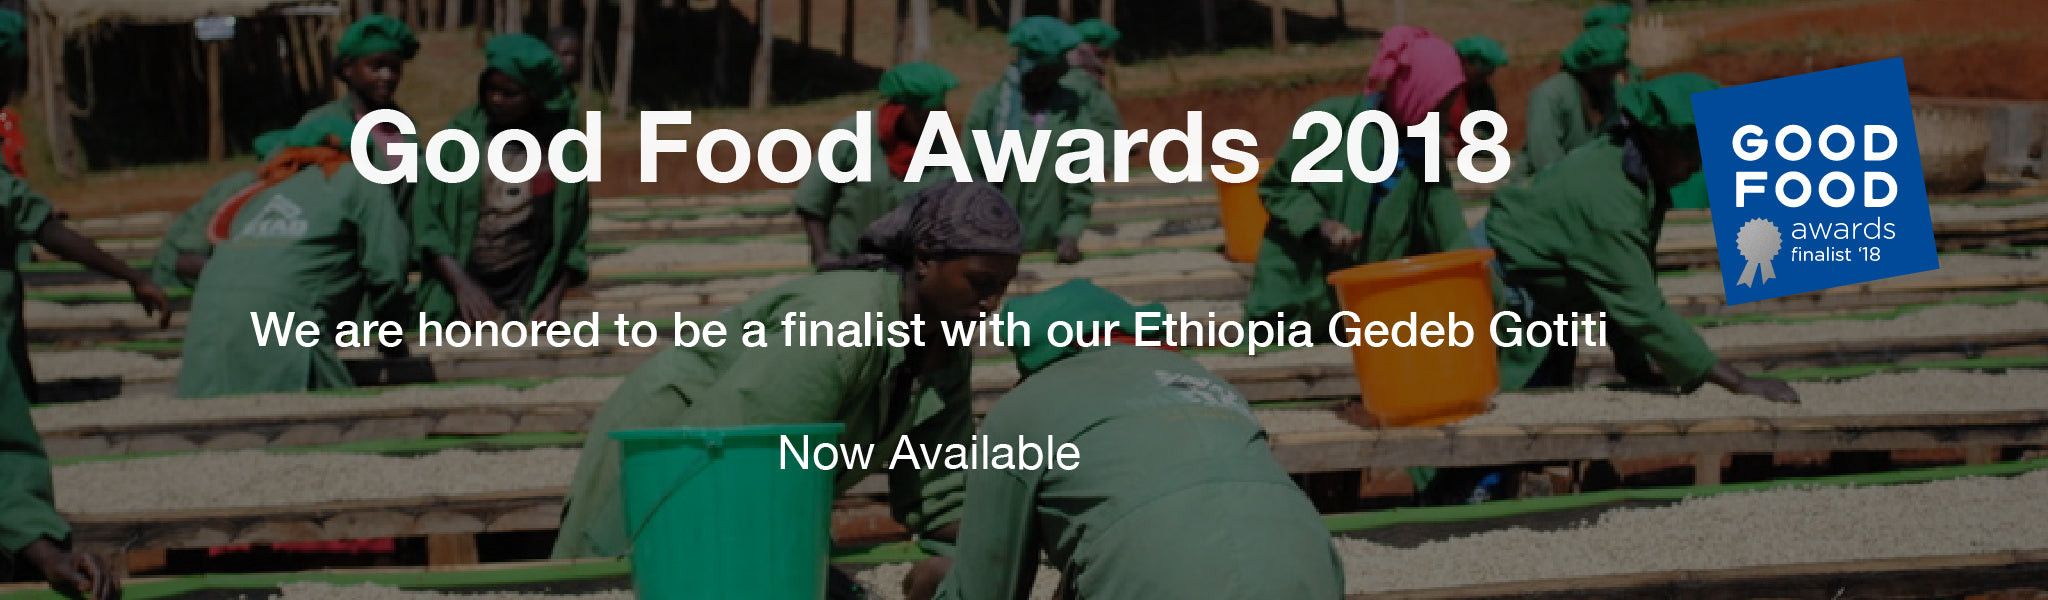 2018 Good Food Awards Finalist Ethiopia Gedeb Gotiti